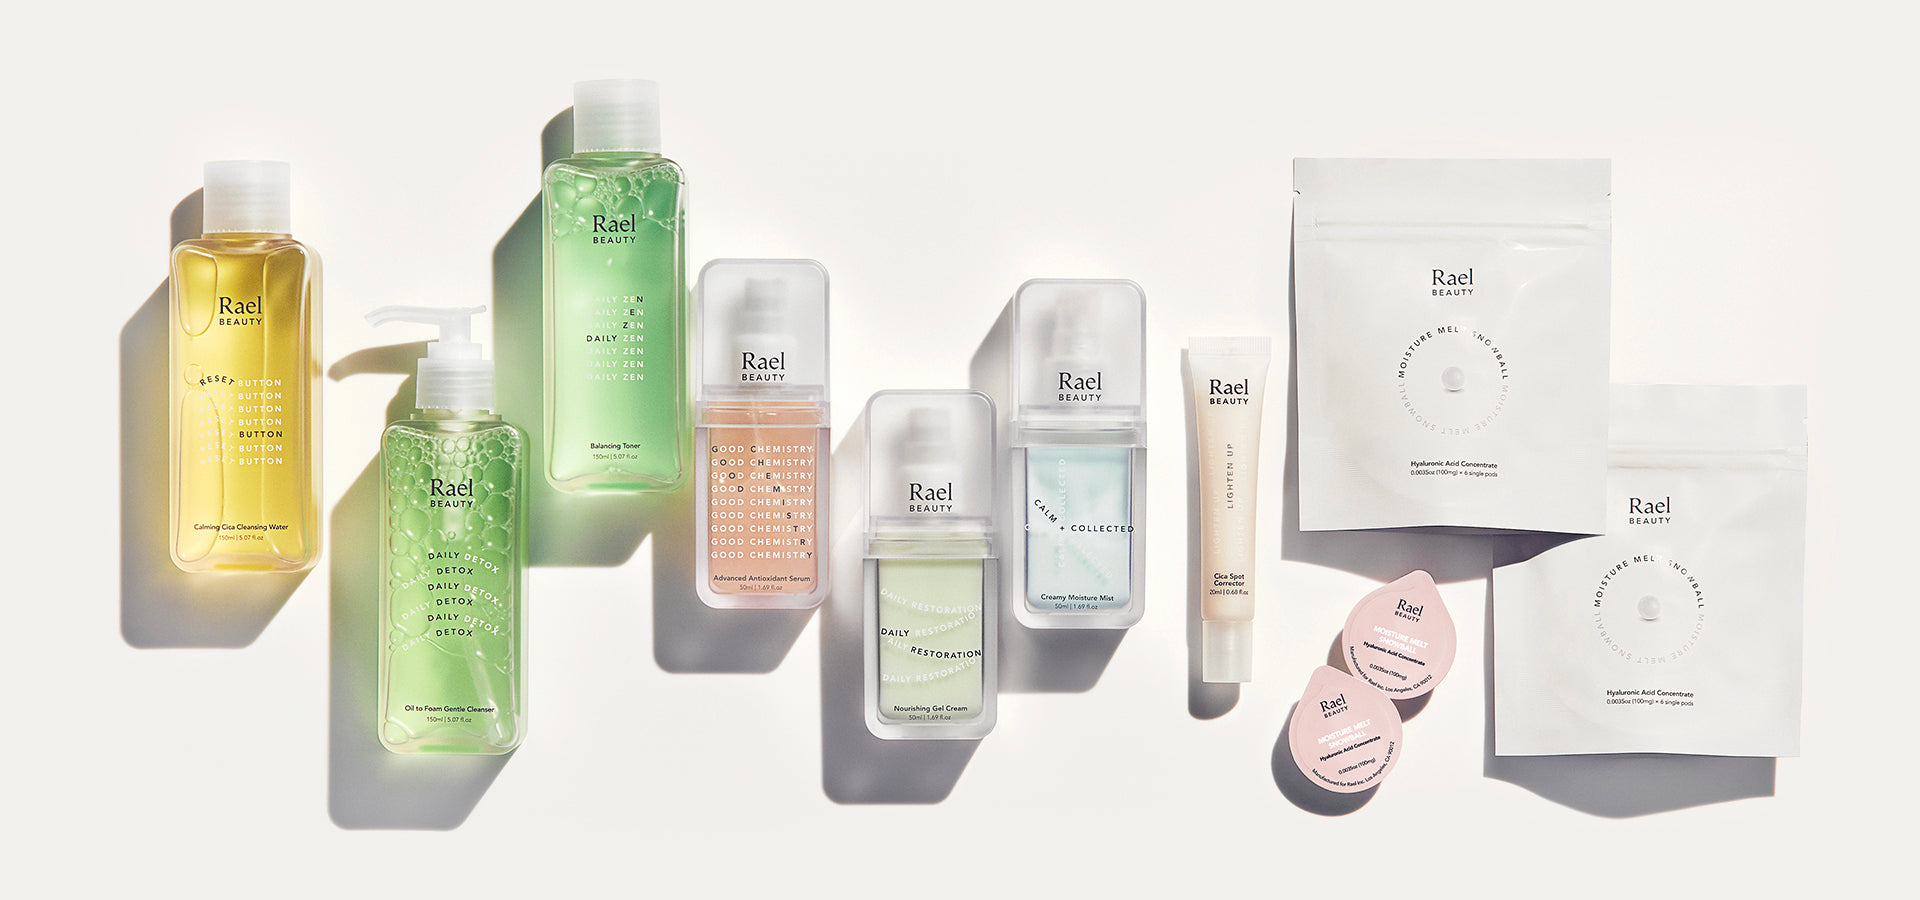 Rael - Skin Care Collection